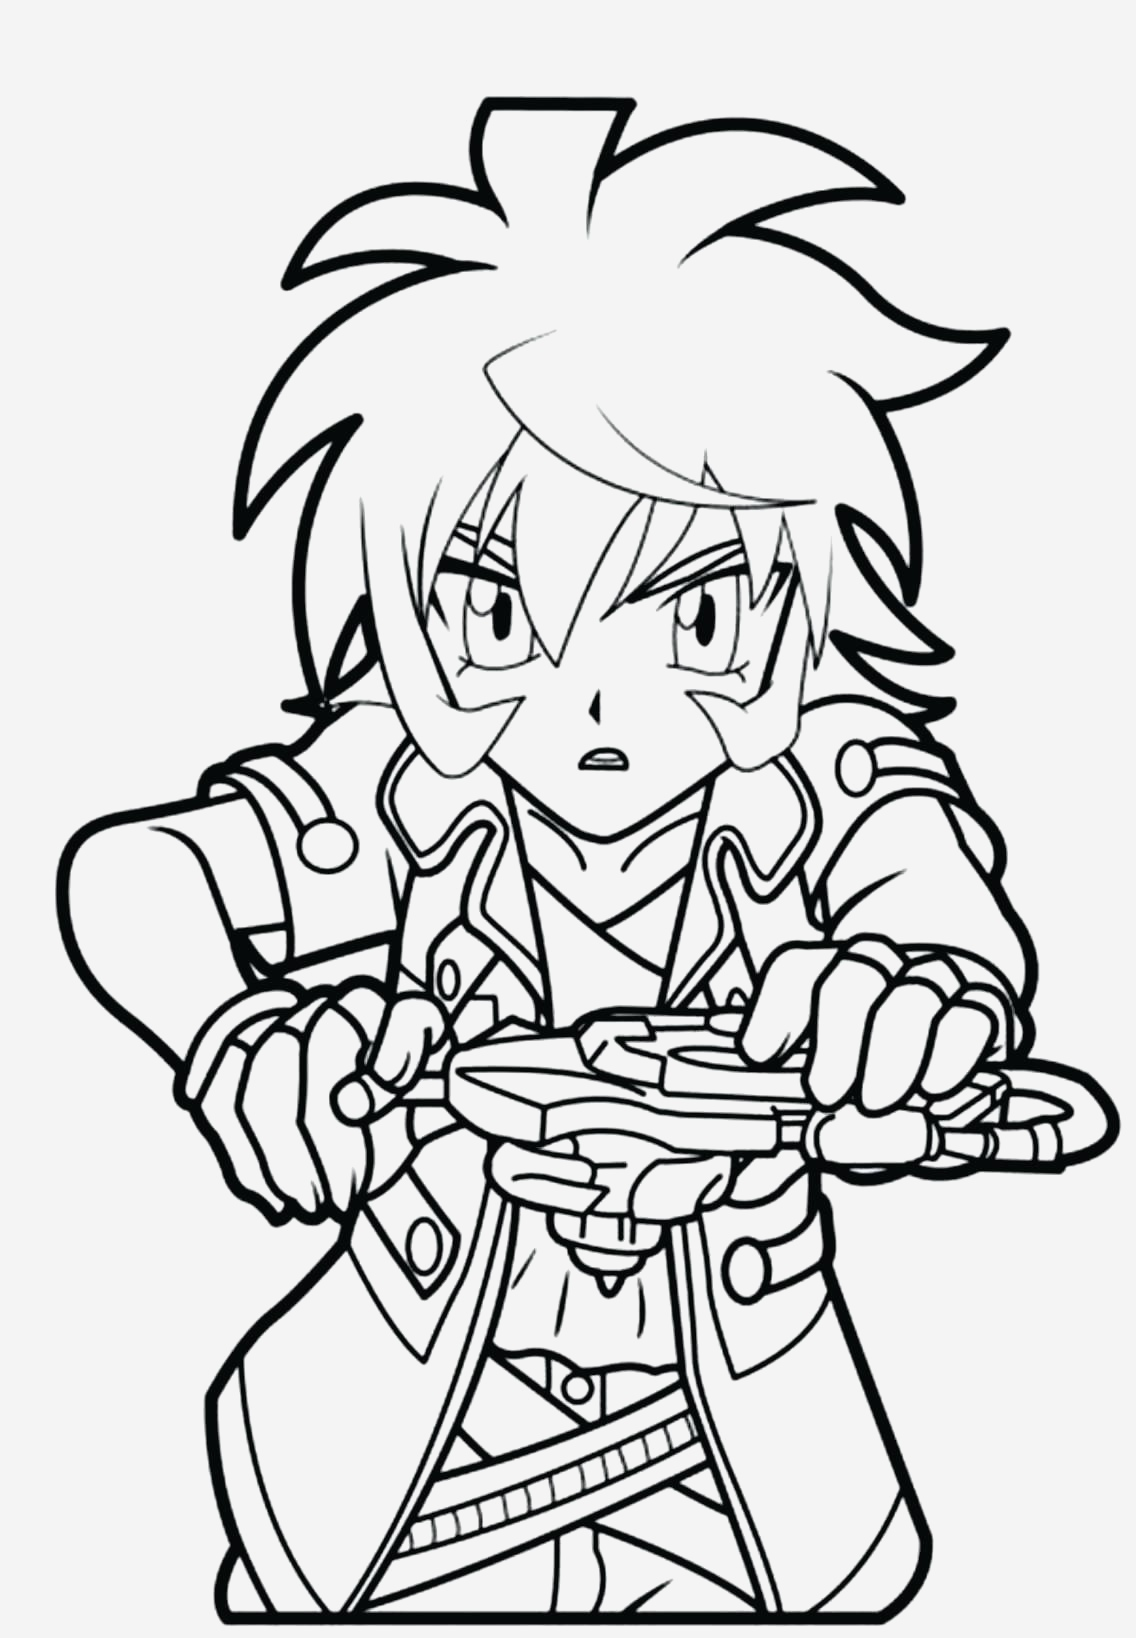 Coloriage Beyblade Burst Turbo Fresh Beyblade Coloring Pages Free – Allenfinesse Of Coloriage Beyblade Burst Turbo